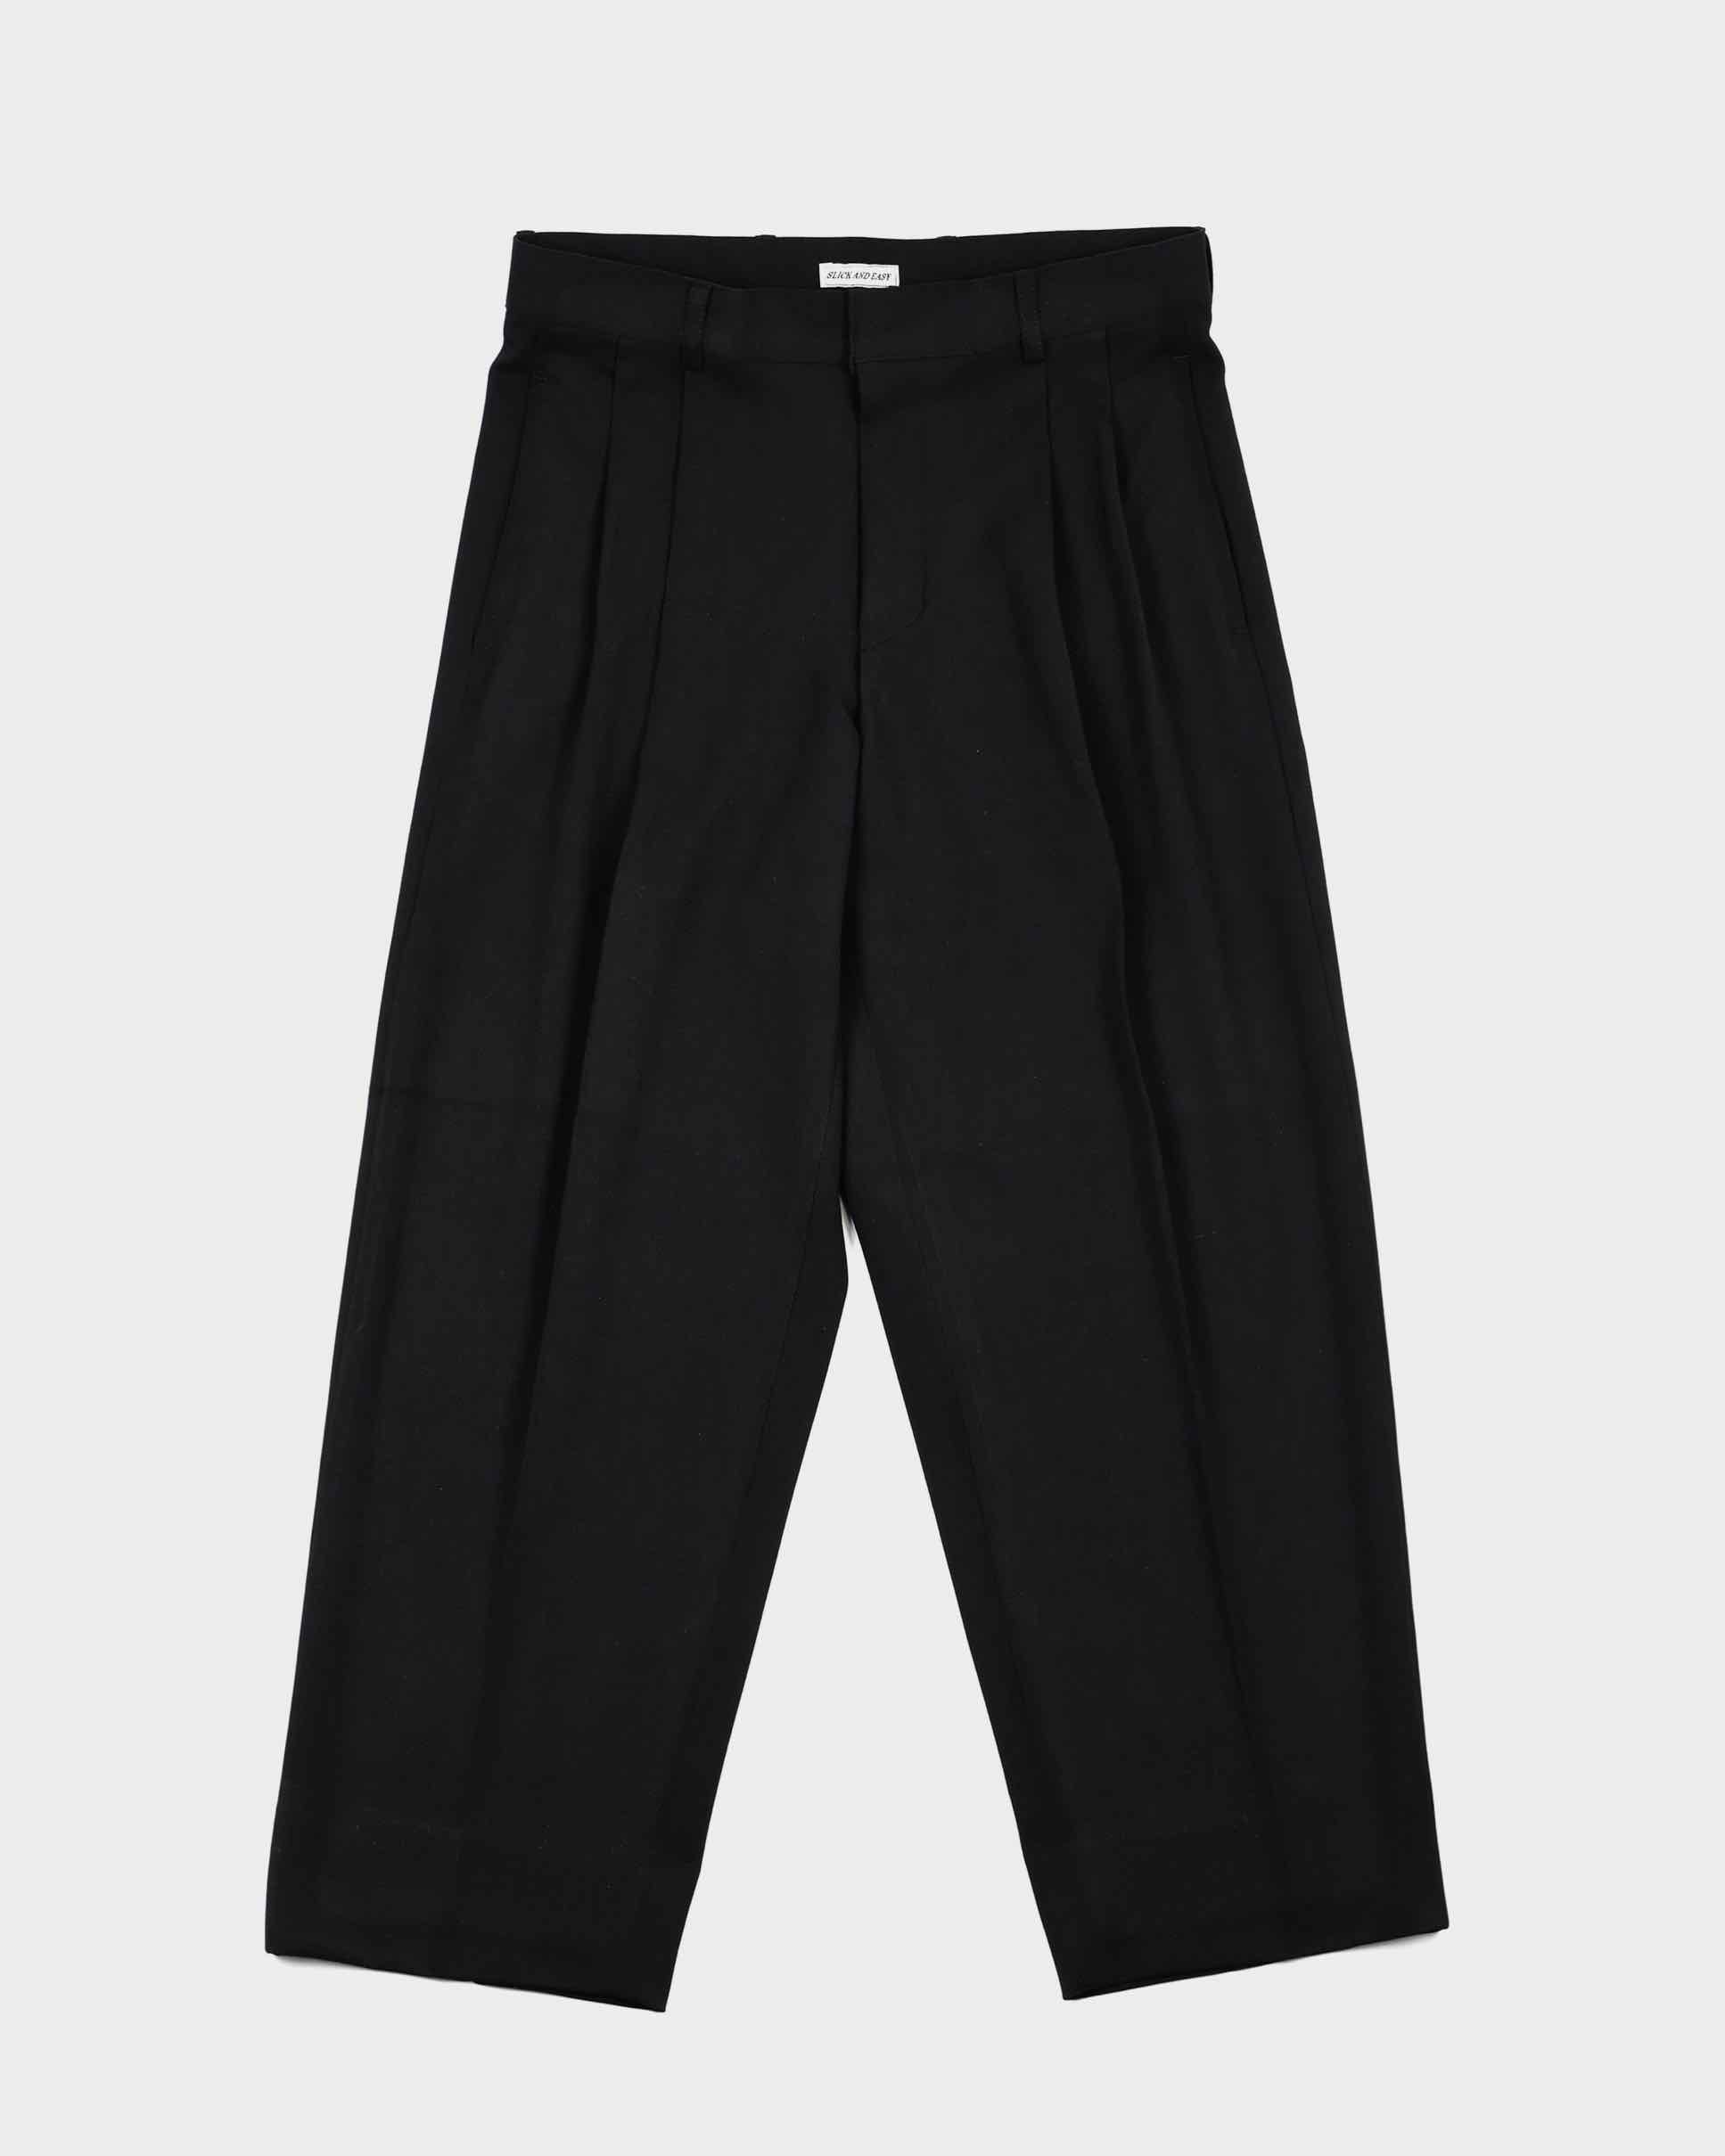 Lyon Pants Black